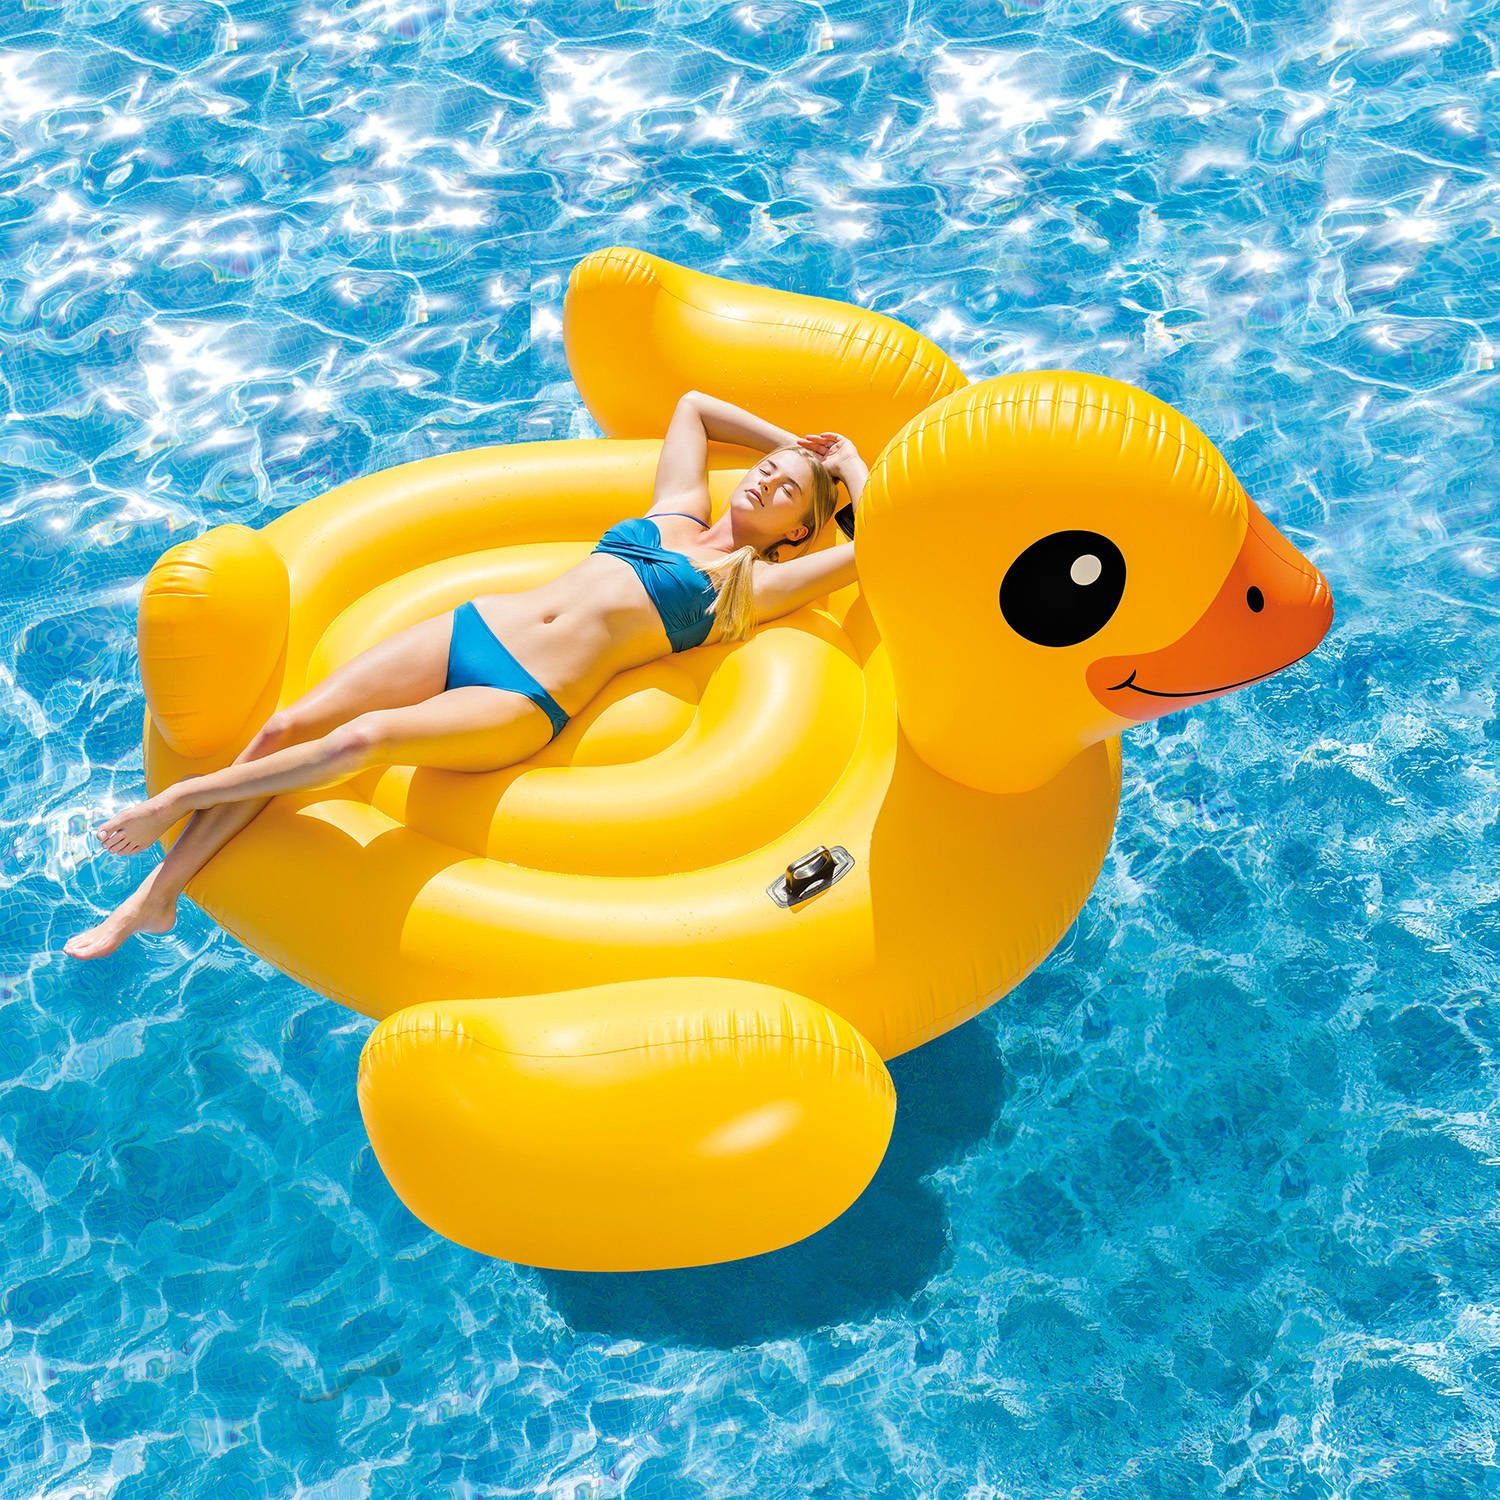 Intex Inflatable Mega Yellow Duck Island Float Walmart